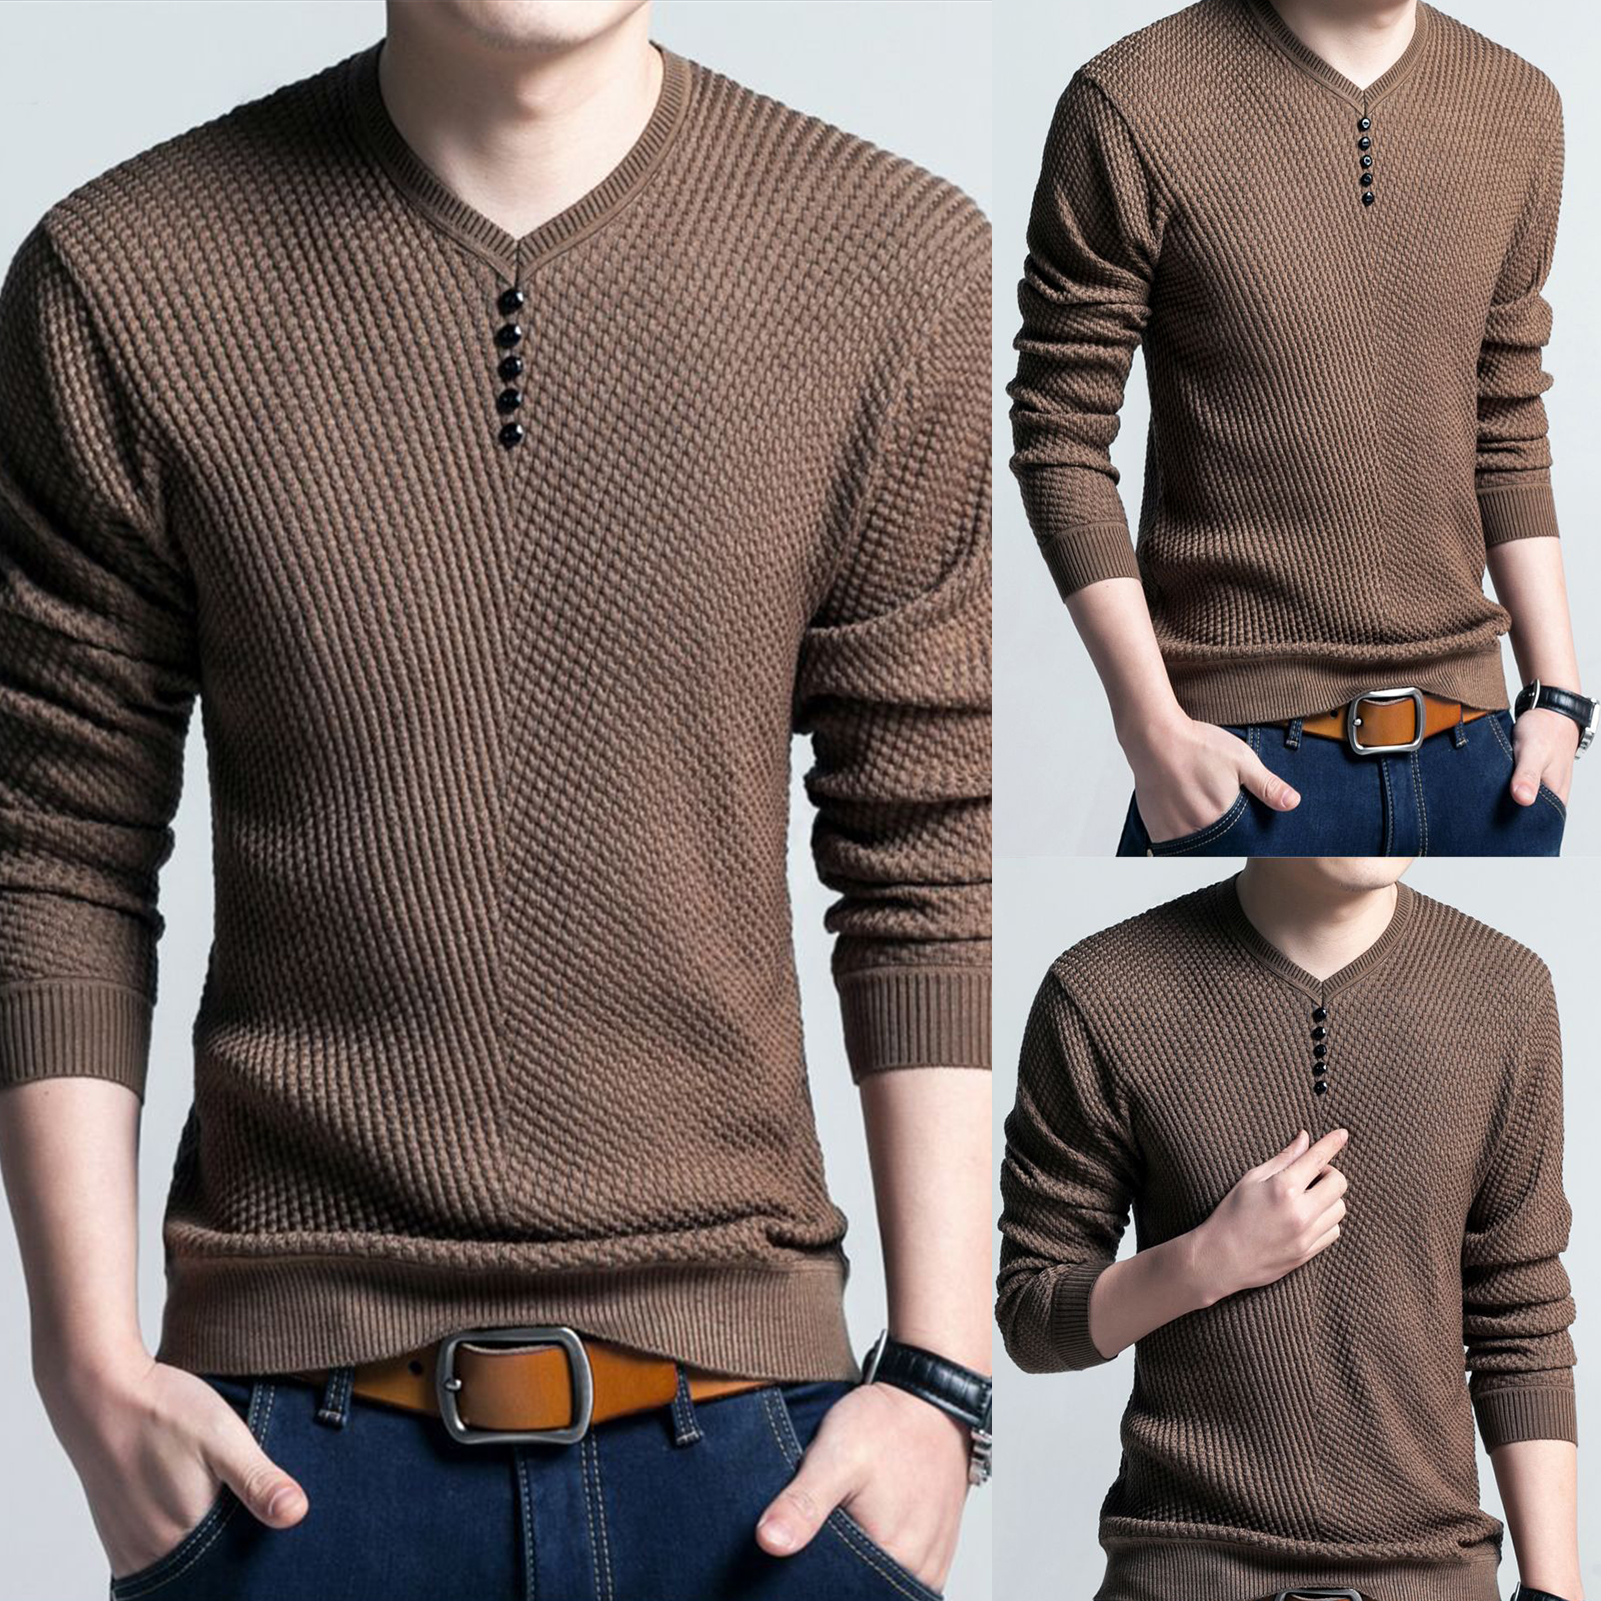 Men Long Sleeve Solid Color Buttons Decor Knitwear Plus Size Bottoming Sweater Men's Knitted Sweaters Pullover Men Knitwear 2020 2